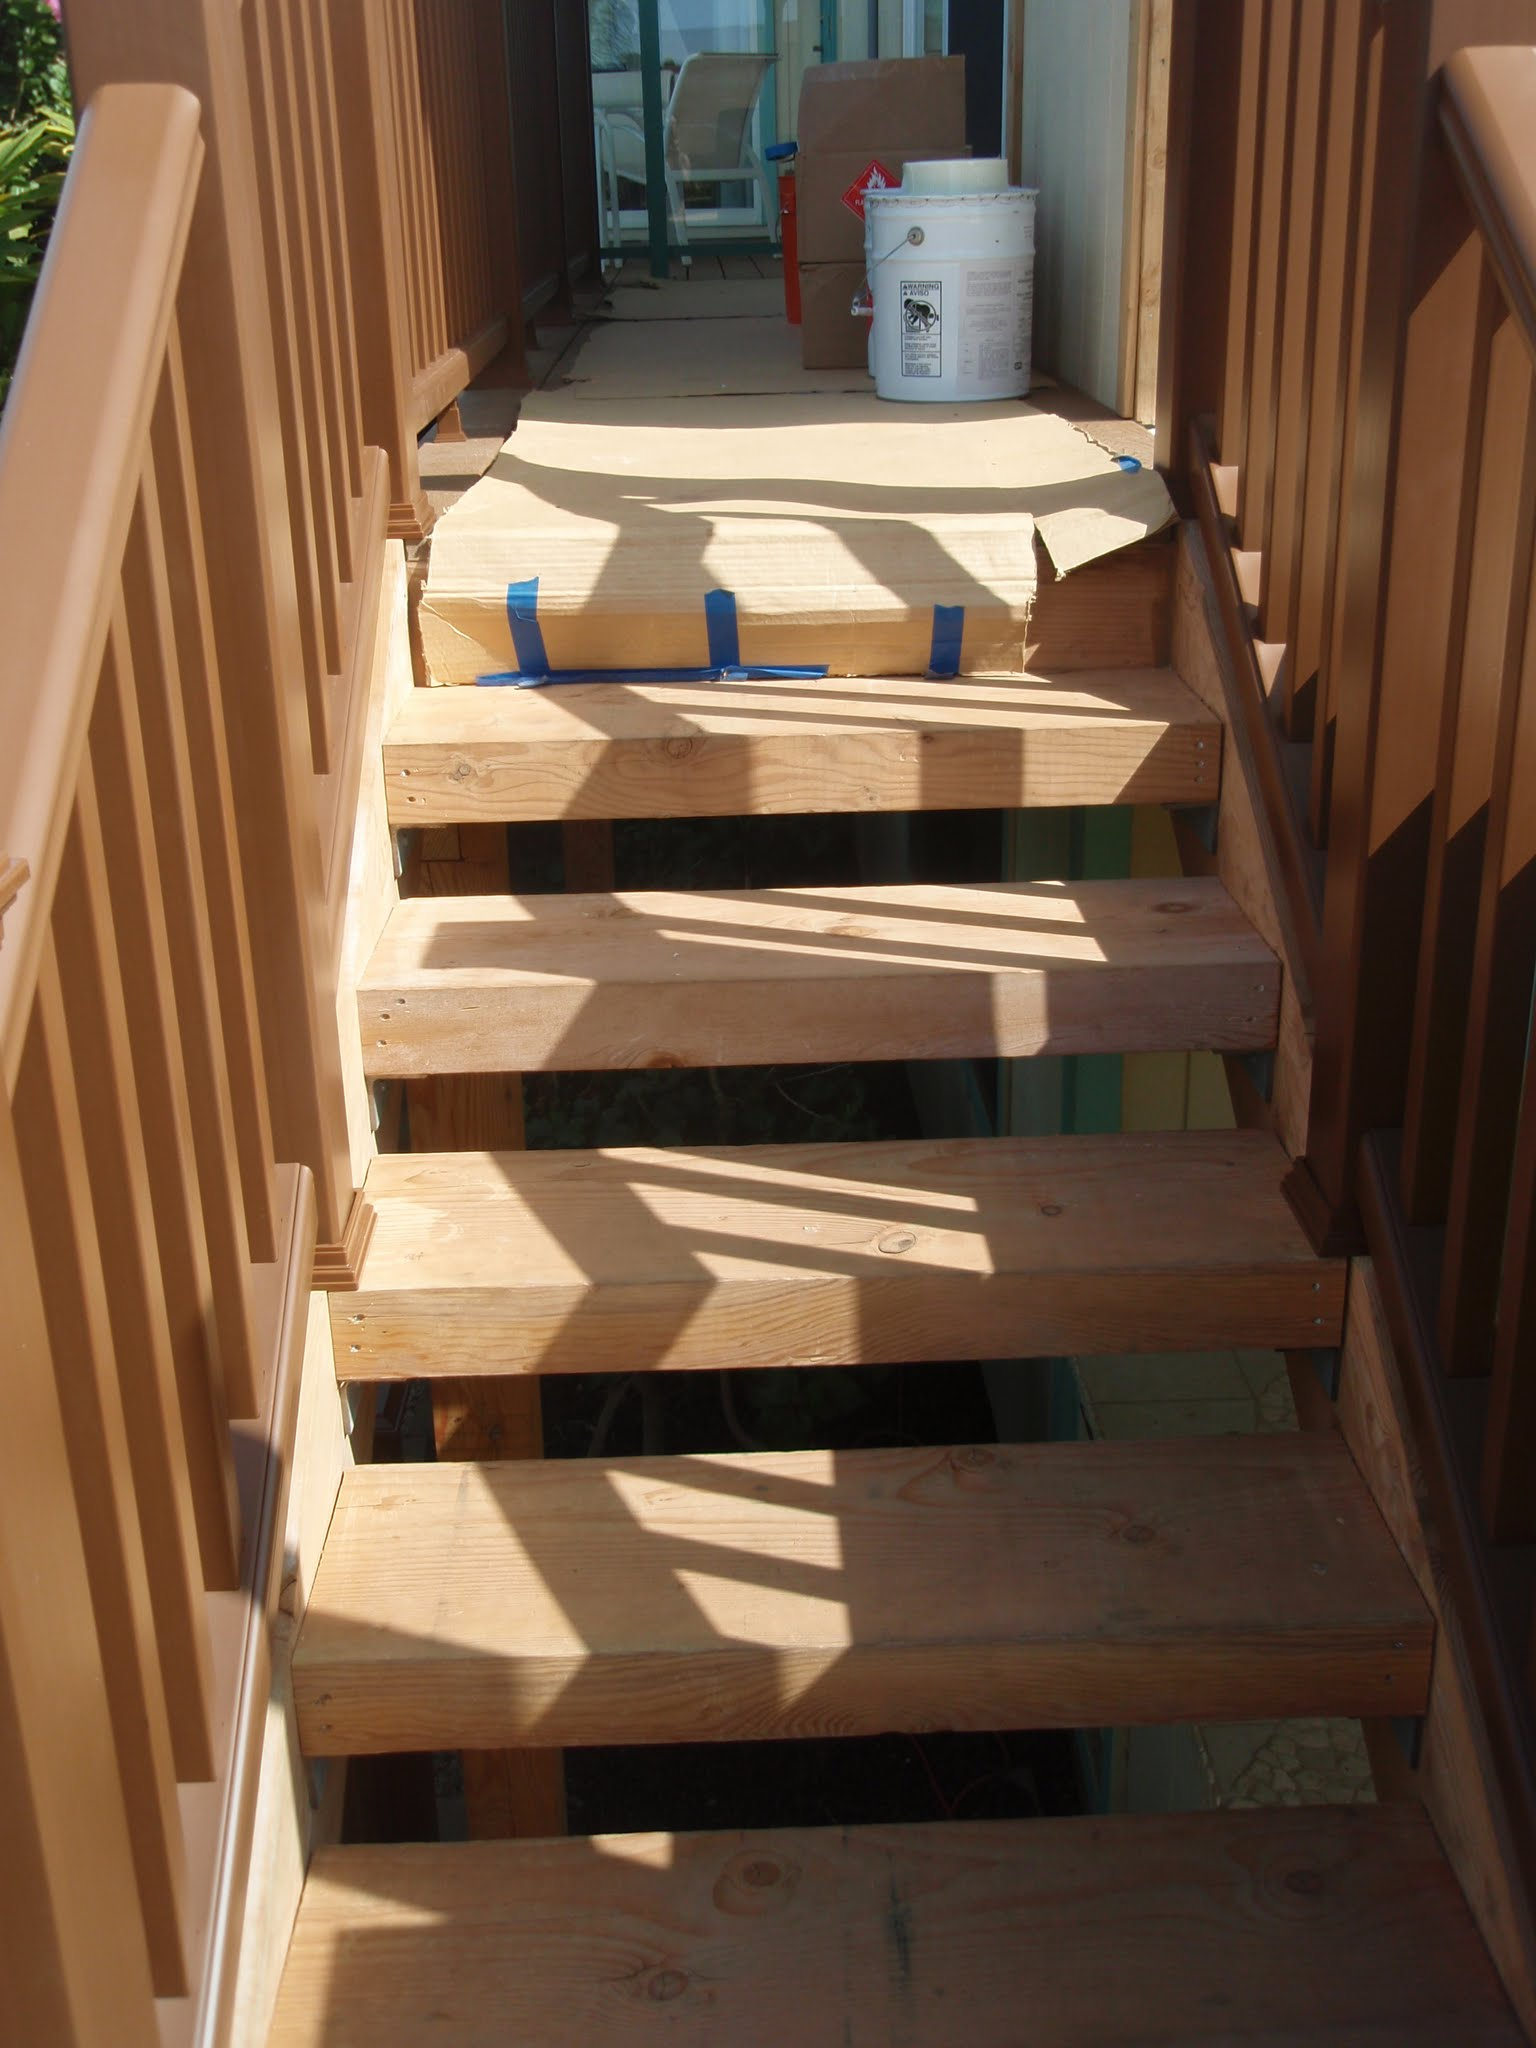 Stair way is ready for caulking & painting